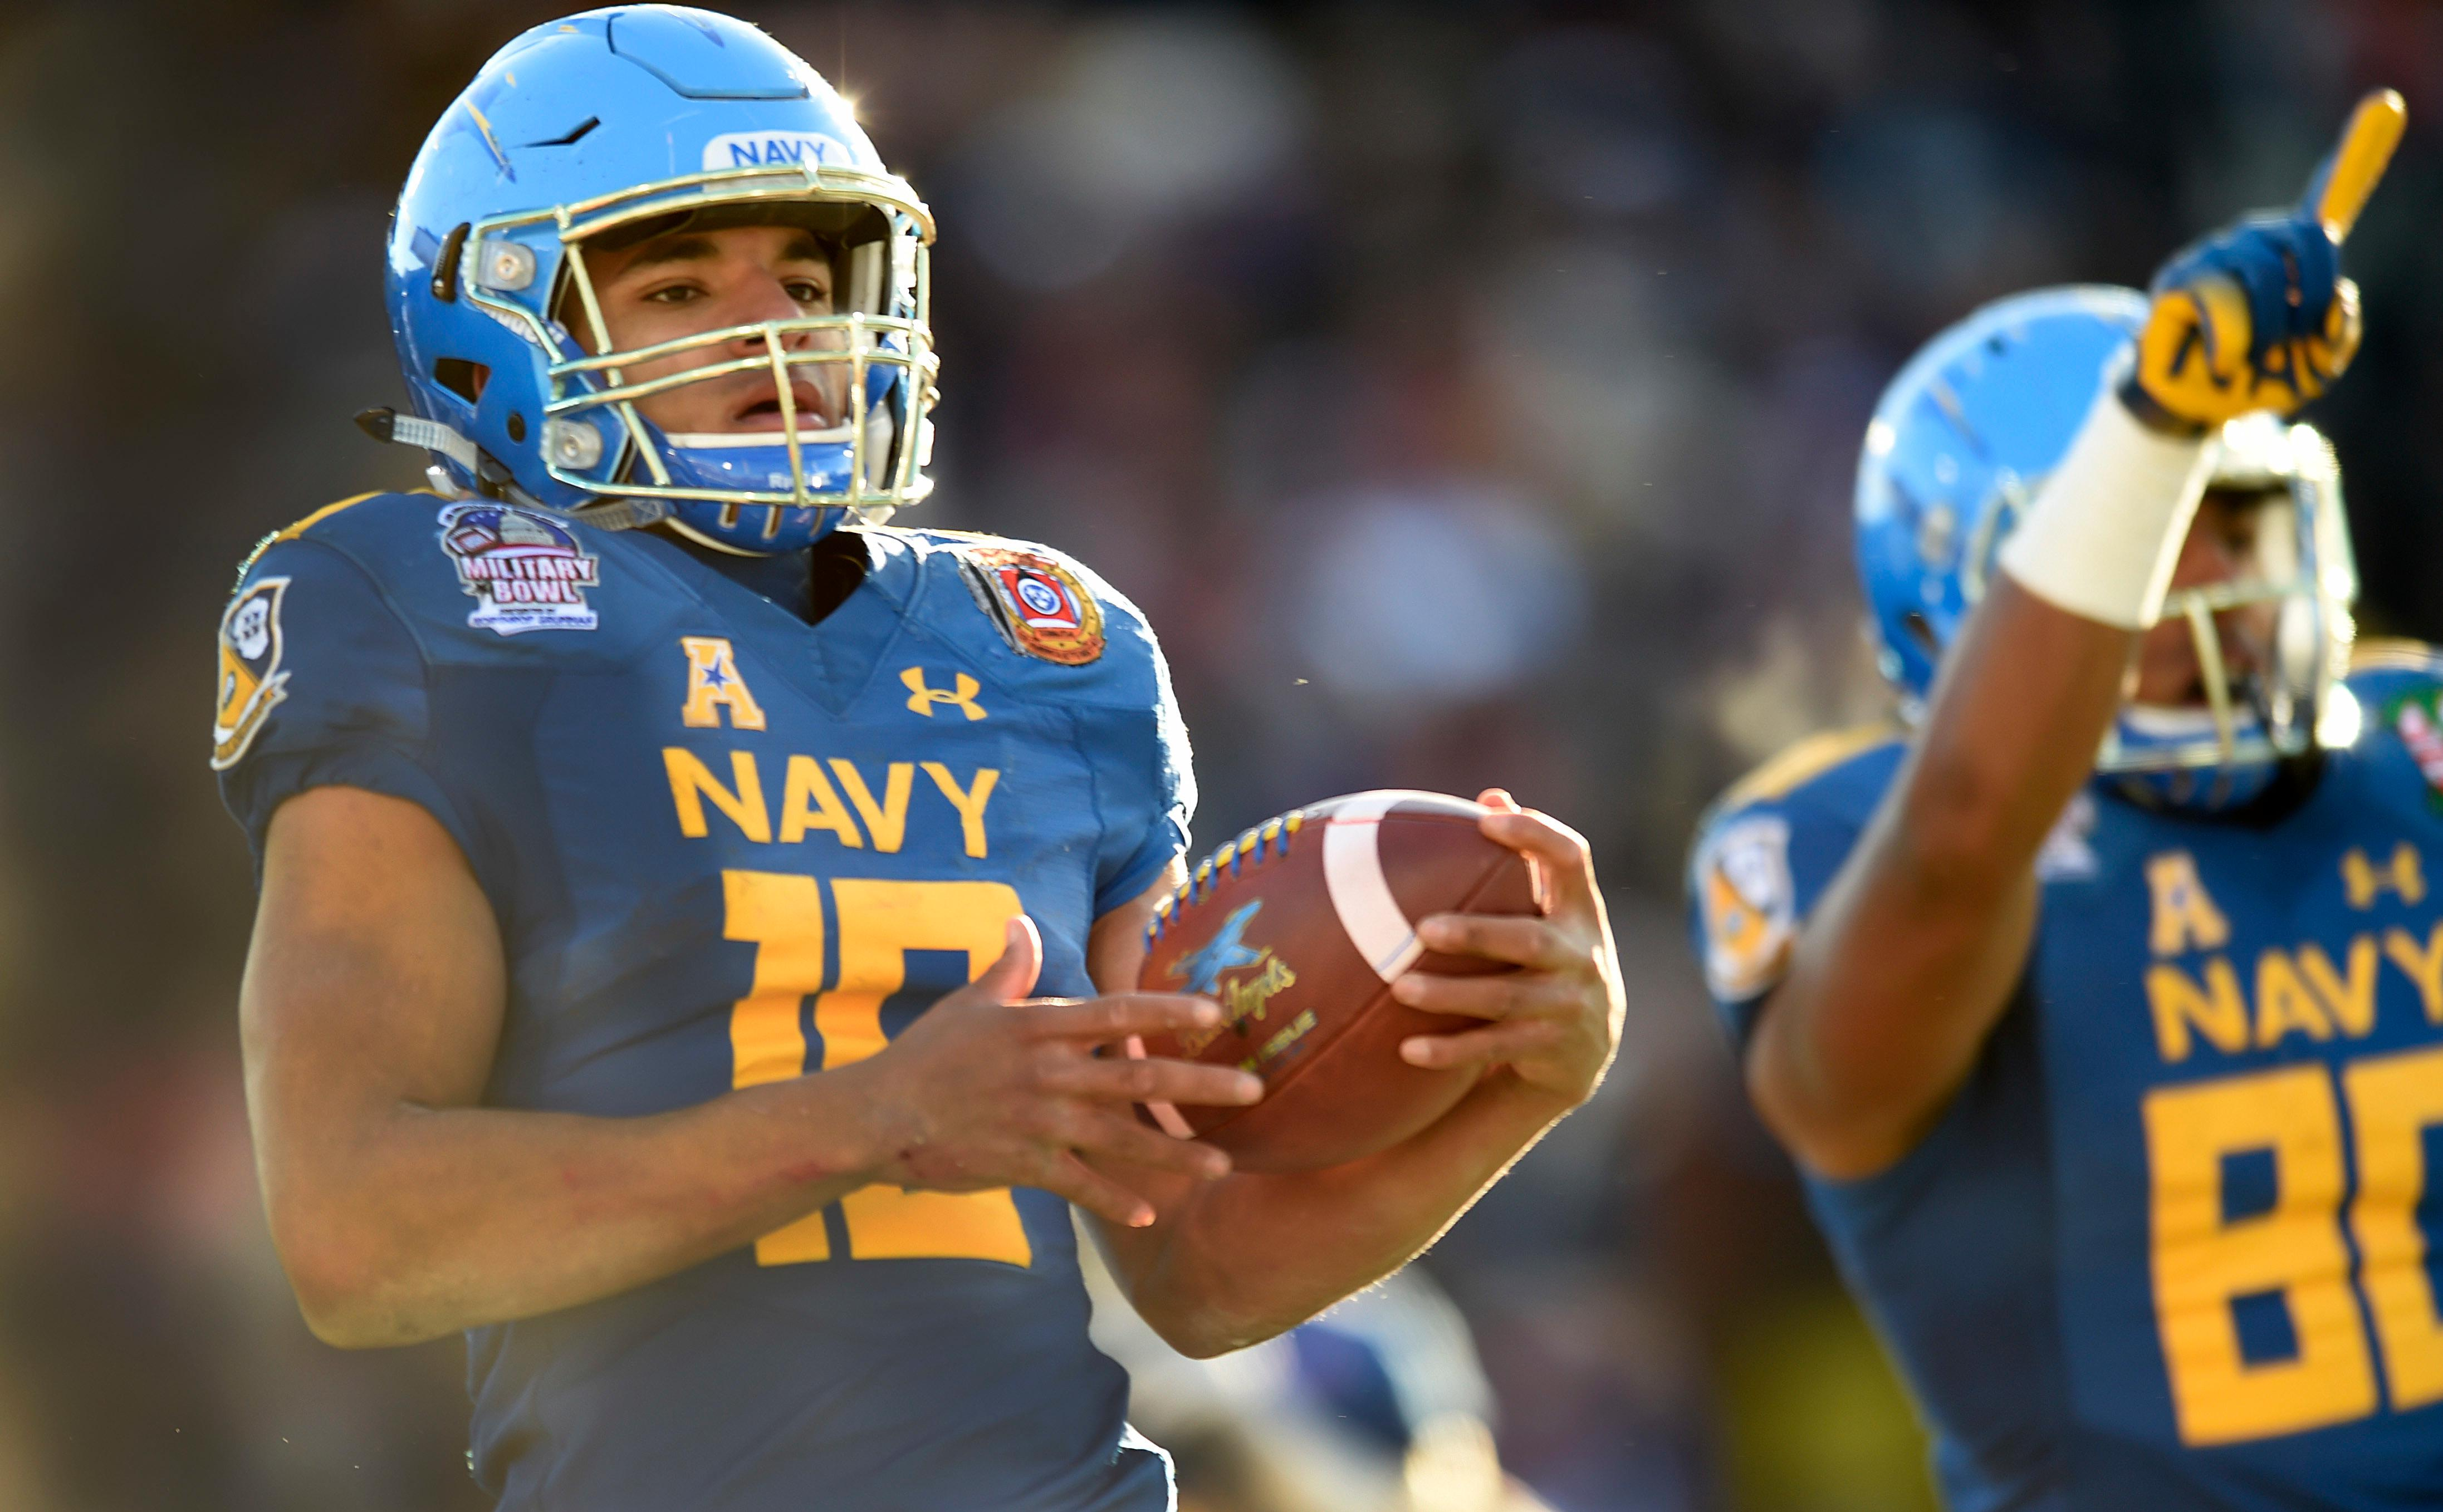 Navy's quarterback Malcolm Perry scores a touchdown against Virginia in the first half of the Military Bowl NCAA college football game, Thursday, Dec. 28, 2017, in Annapolis, Md. (AP Photo/Gail Burton)